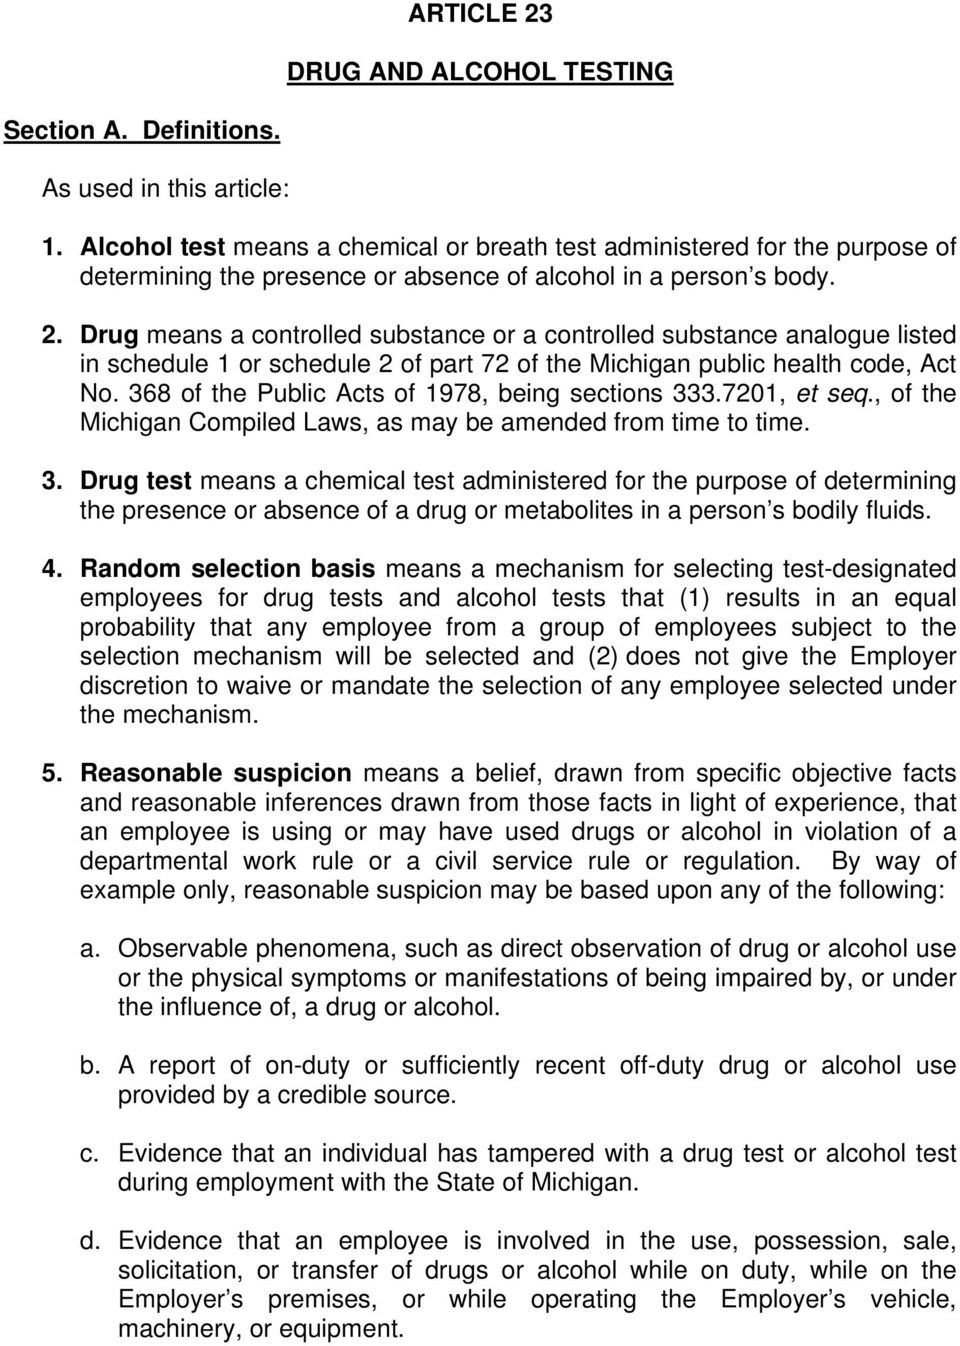 Drug means a controlled substance or a controlled substance analogue listed in schedule 1 or schedule 2 of part 72 of the Michigan public health code, Act No.